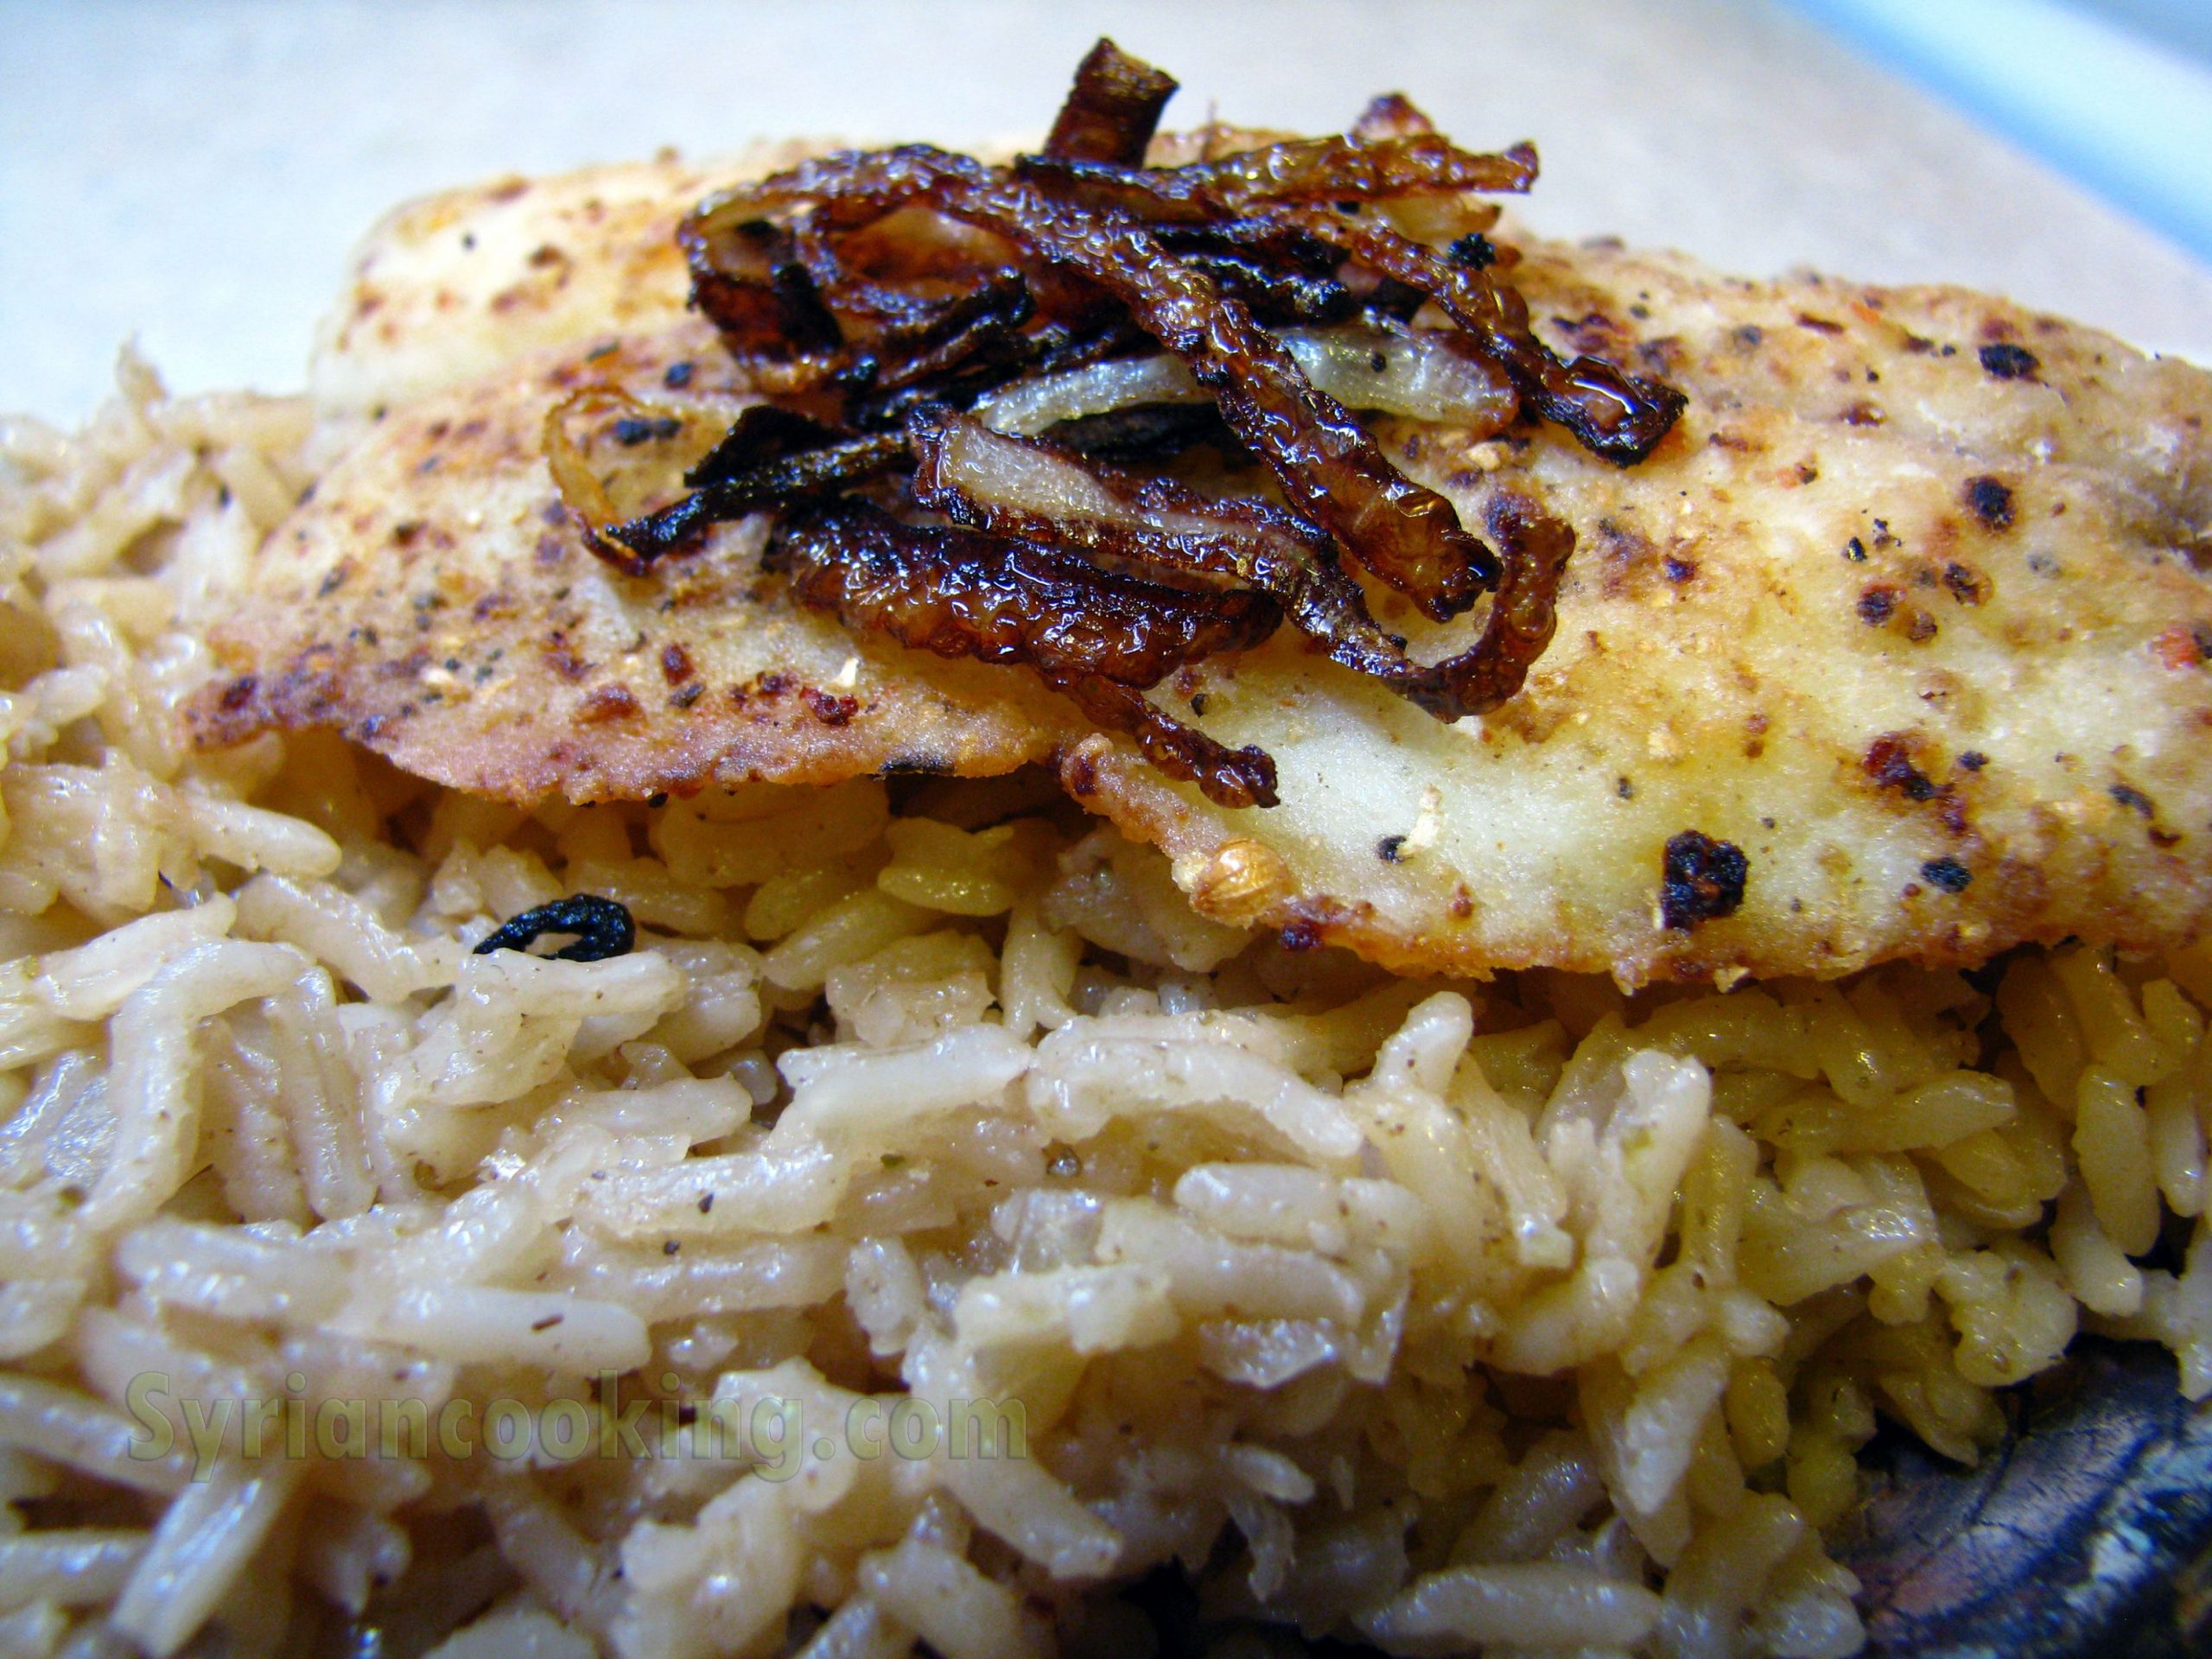 Sayadieh (Fish With Spiced Rice And Caramelized Onions)